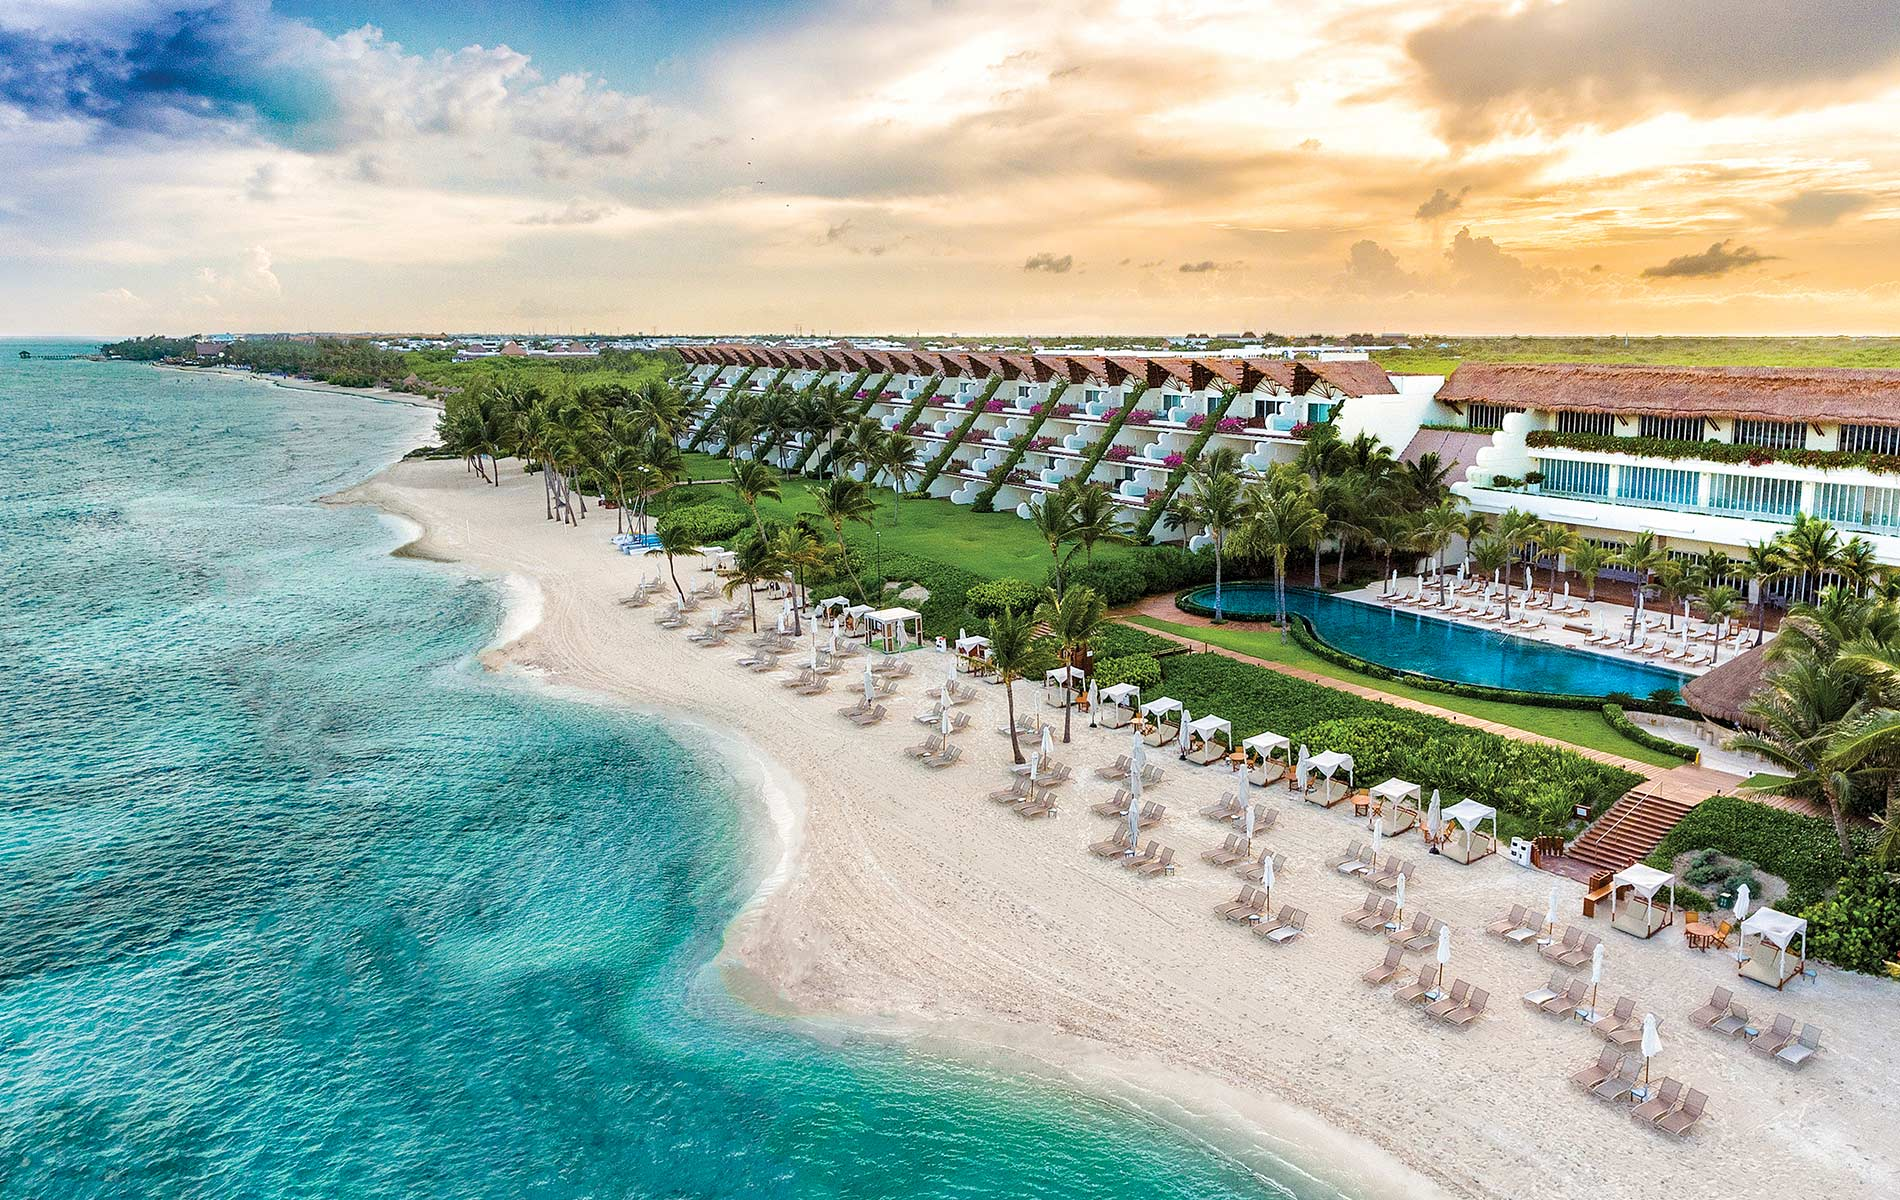 The Grand Velas Riviera Maya resort in Mexico's Yucatán Peninsula view of the beach and resort at sunset